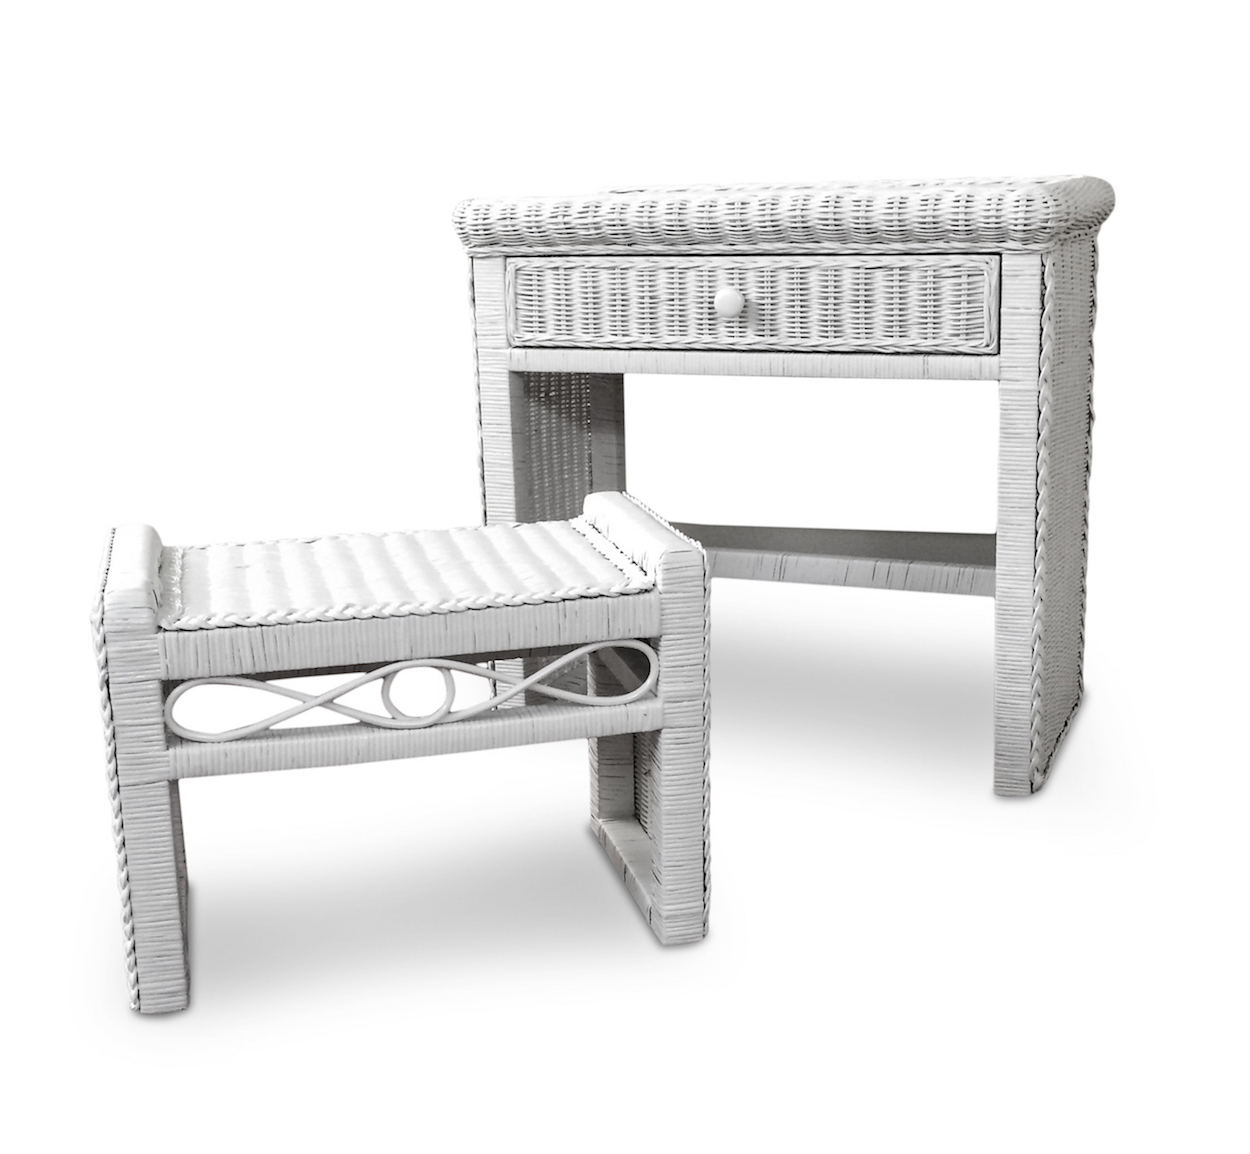 Favorite 1 Drawer Wicker Desk and Bench | Wicker Paradise MT54